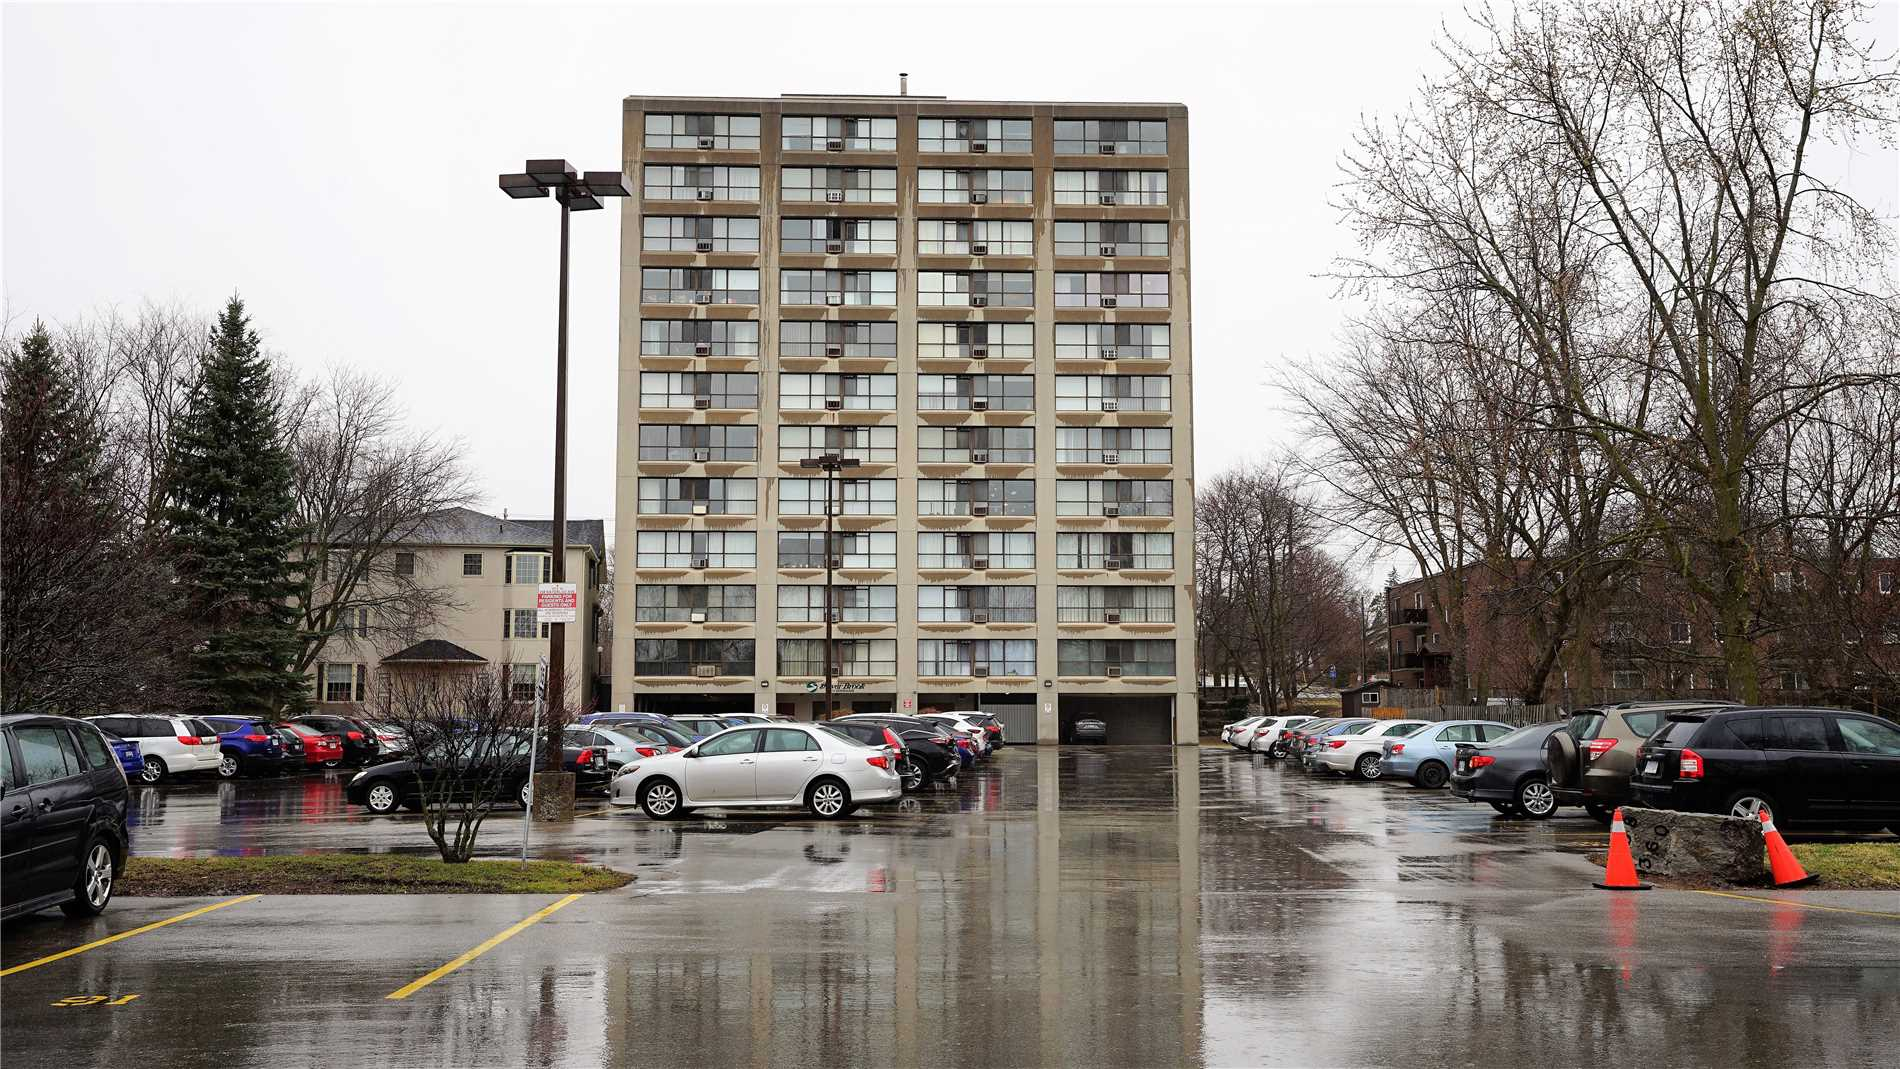 This Apartment Style Condo Is Located  On A Quite St. Minutes Away From Guelph ,Vibrant Downtown, Minute Away From Highway 6 And Short Drive To Hwy 401. Enjoy The River Trail & Howitt Park. You Will Enjoy New Modern Style Kitchen With New Appliances In The Kitchen, Ensuite Laundry.Perfect For First Time Home Buyer, Investor And Those Looking To Down-Size.